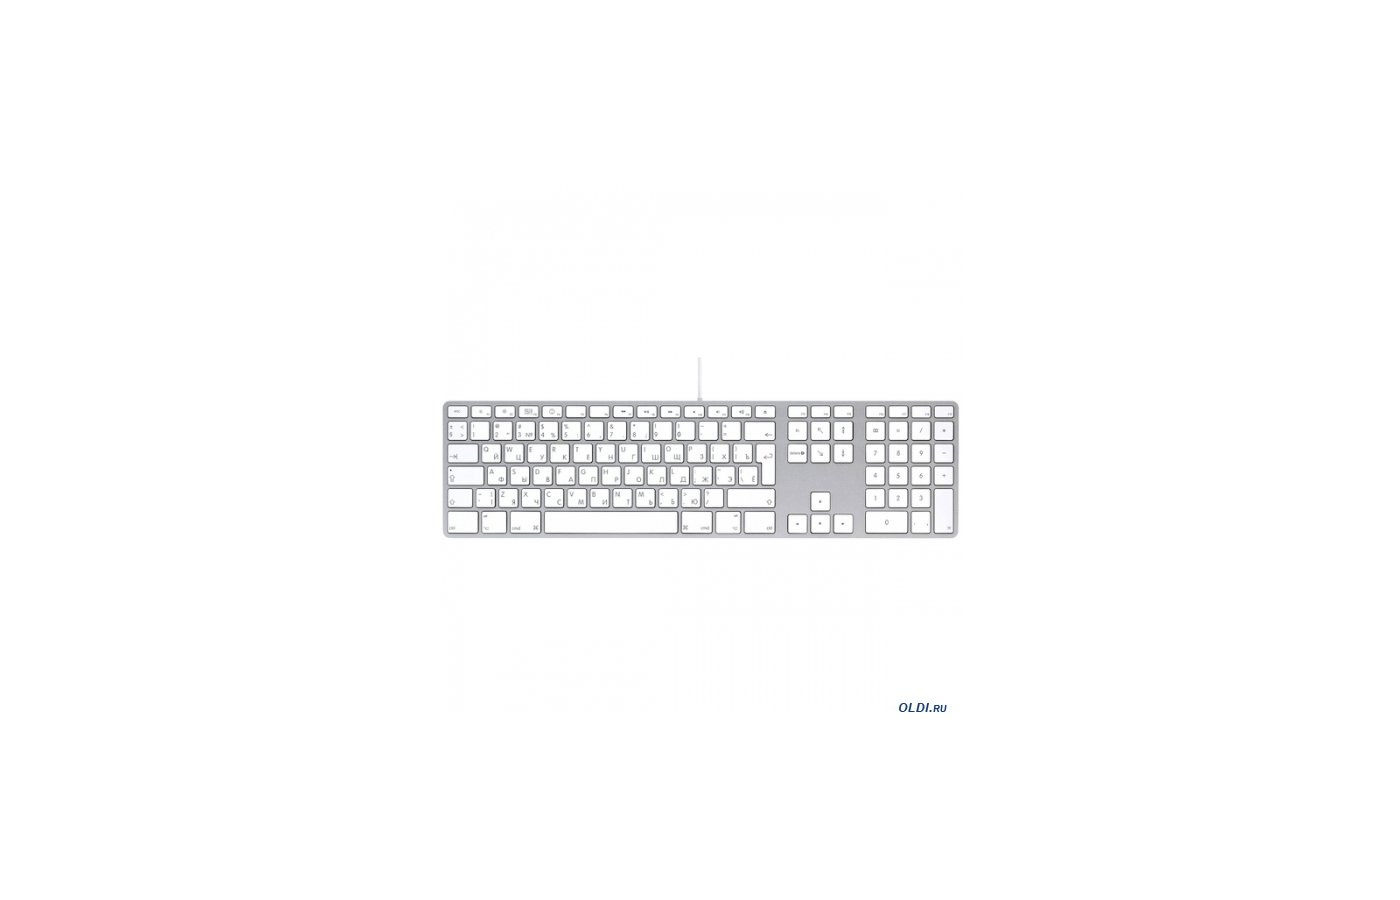 Клавиатура проводная Apple Keyboard with Numeric Keypad (MB110RU/B)